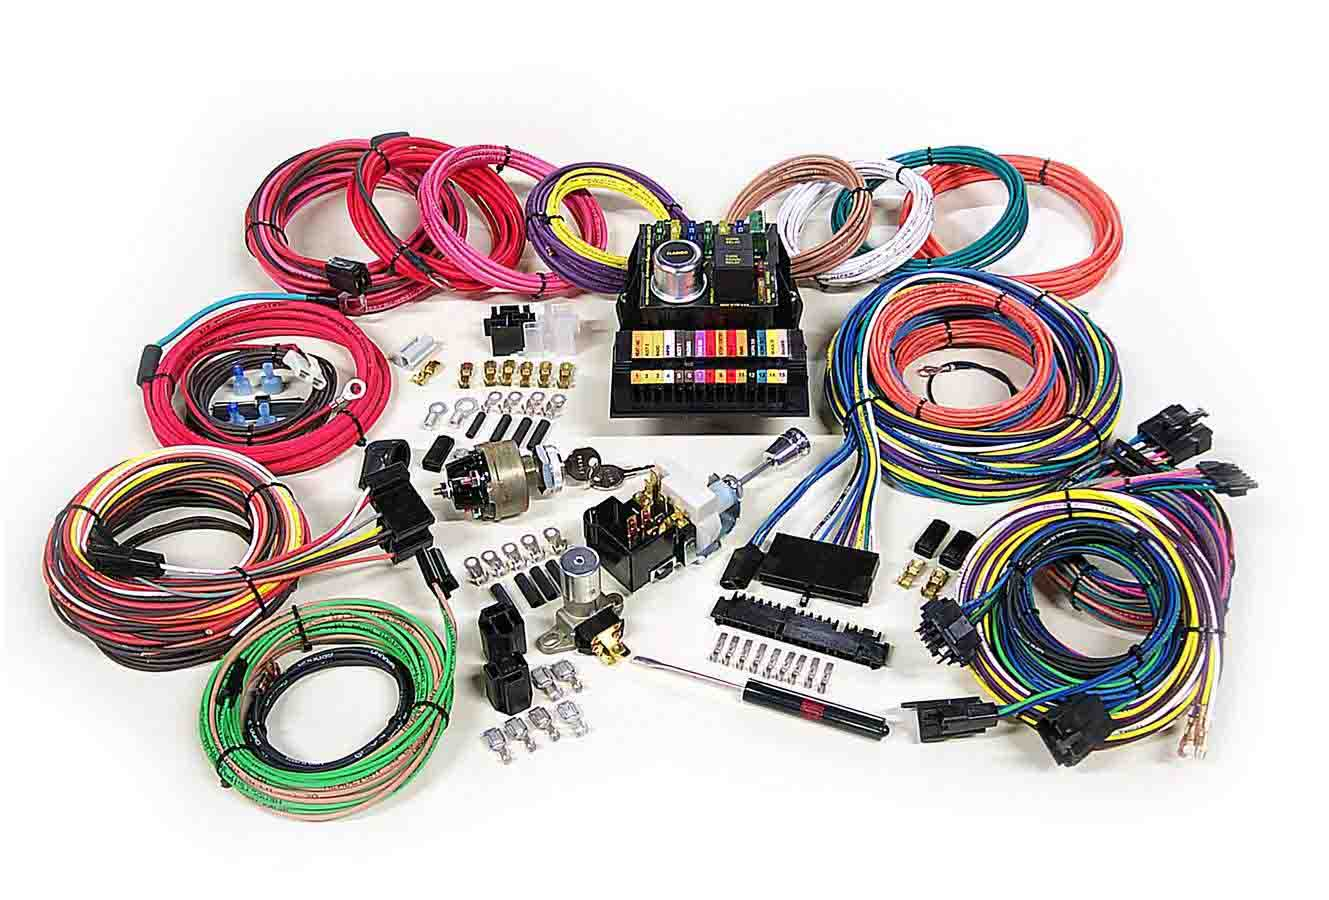 hight resolution of shop for full wiring harness universal racecar engineering auto wiring repair kit auto wiring kit